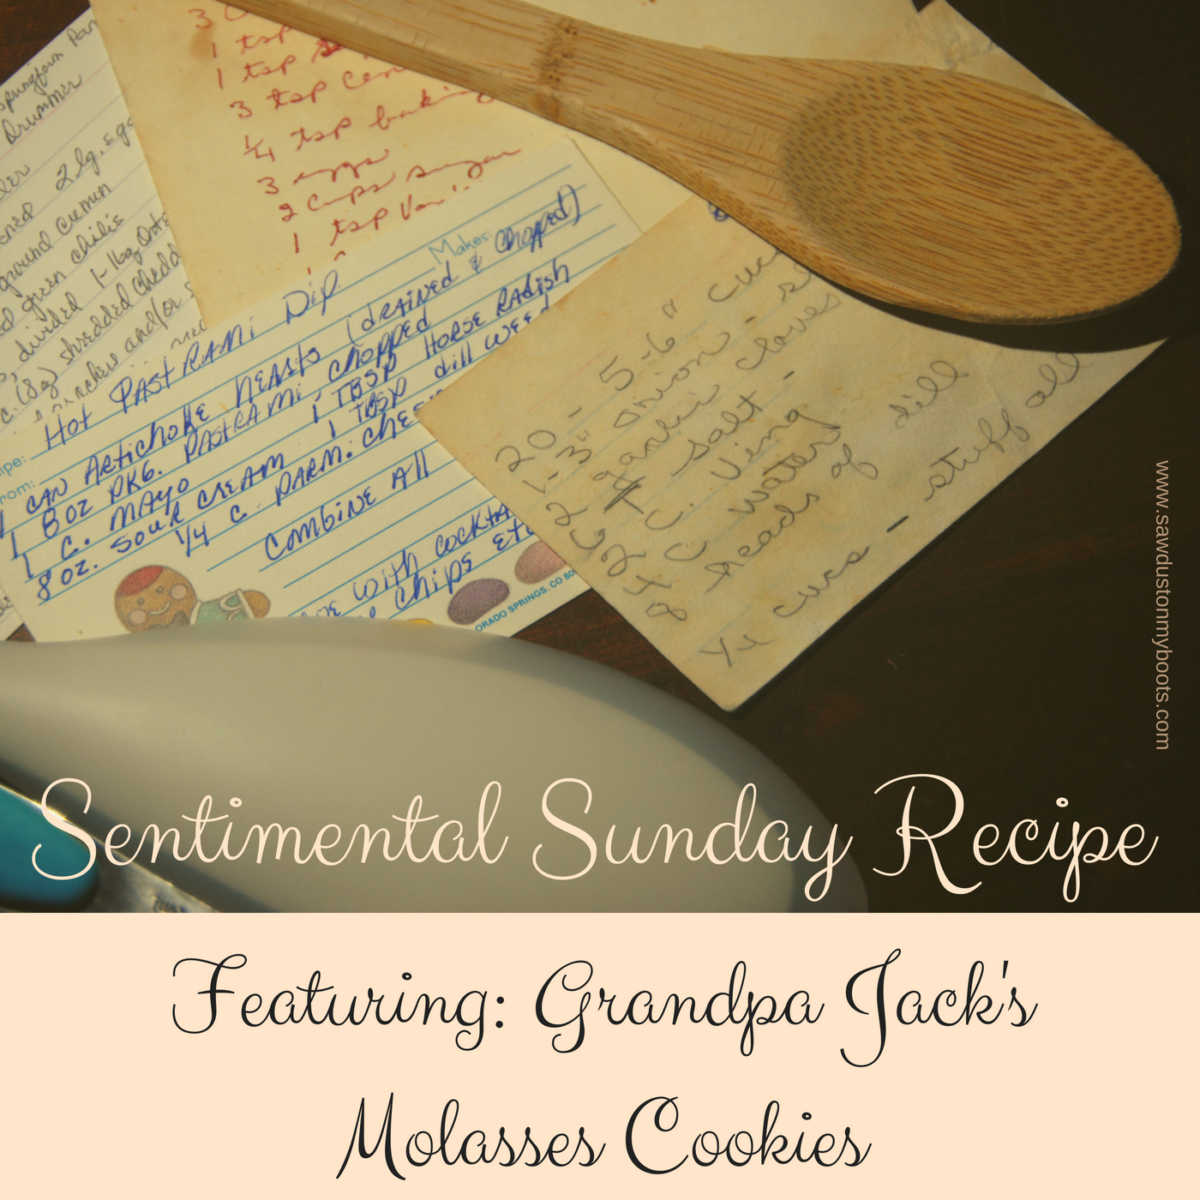 Grandpa Jack's Molasses Cookies: Sentimental Sunday